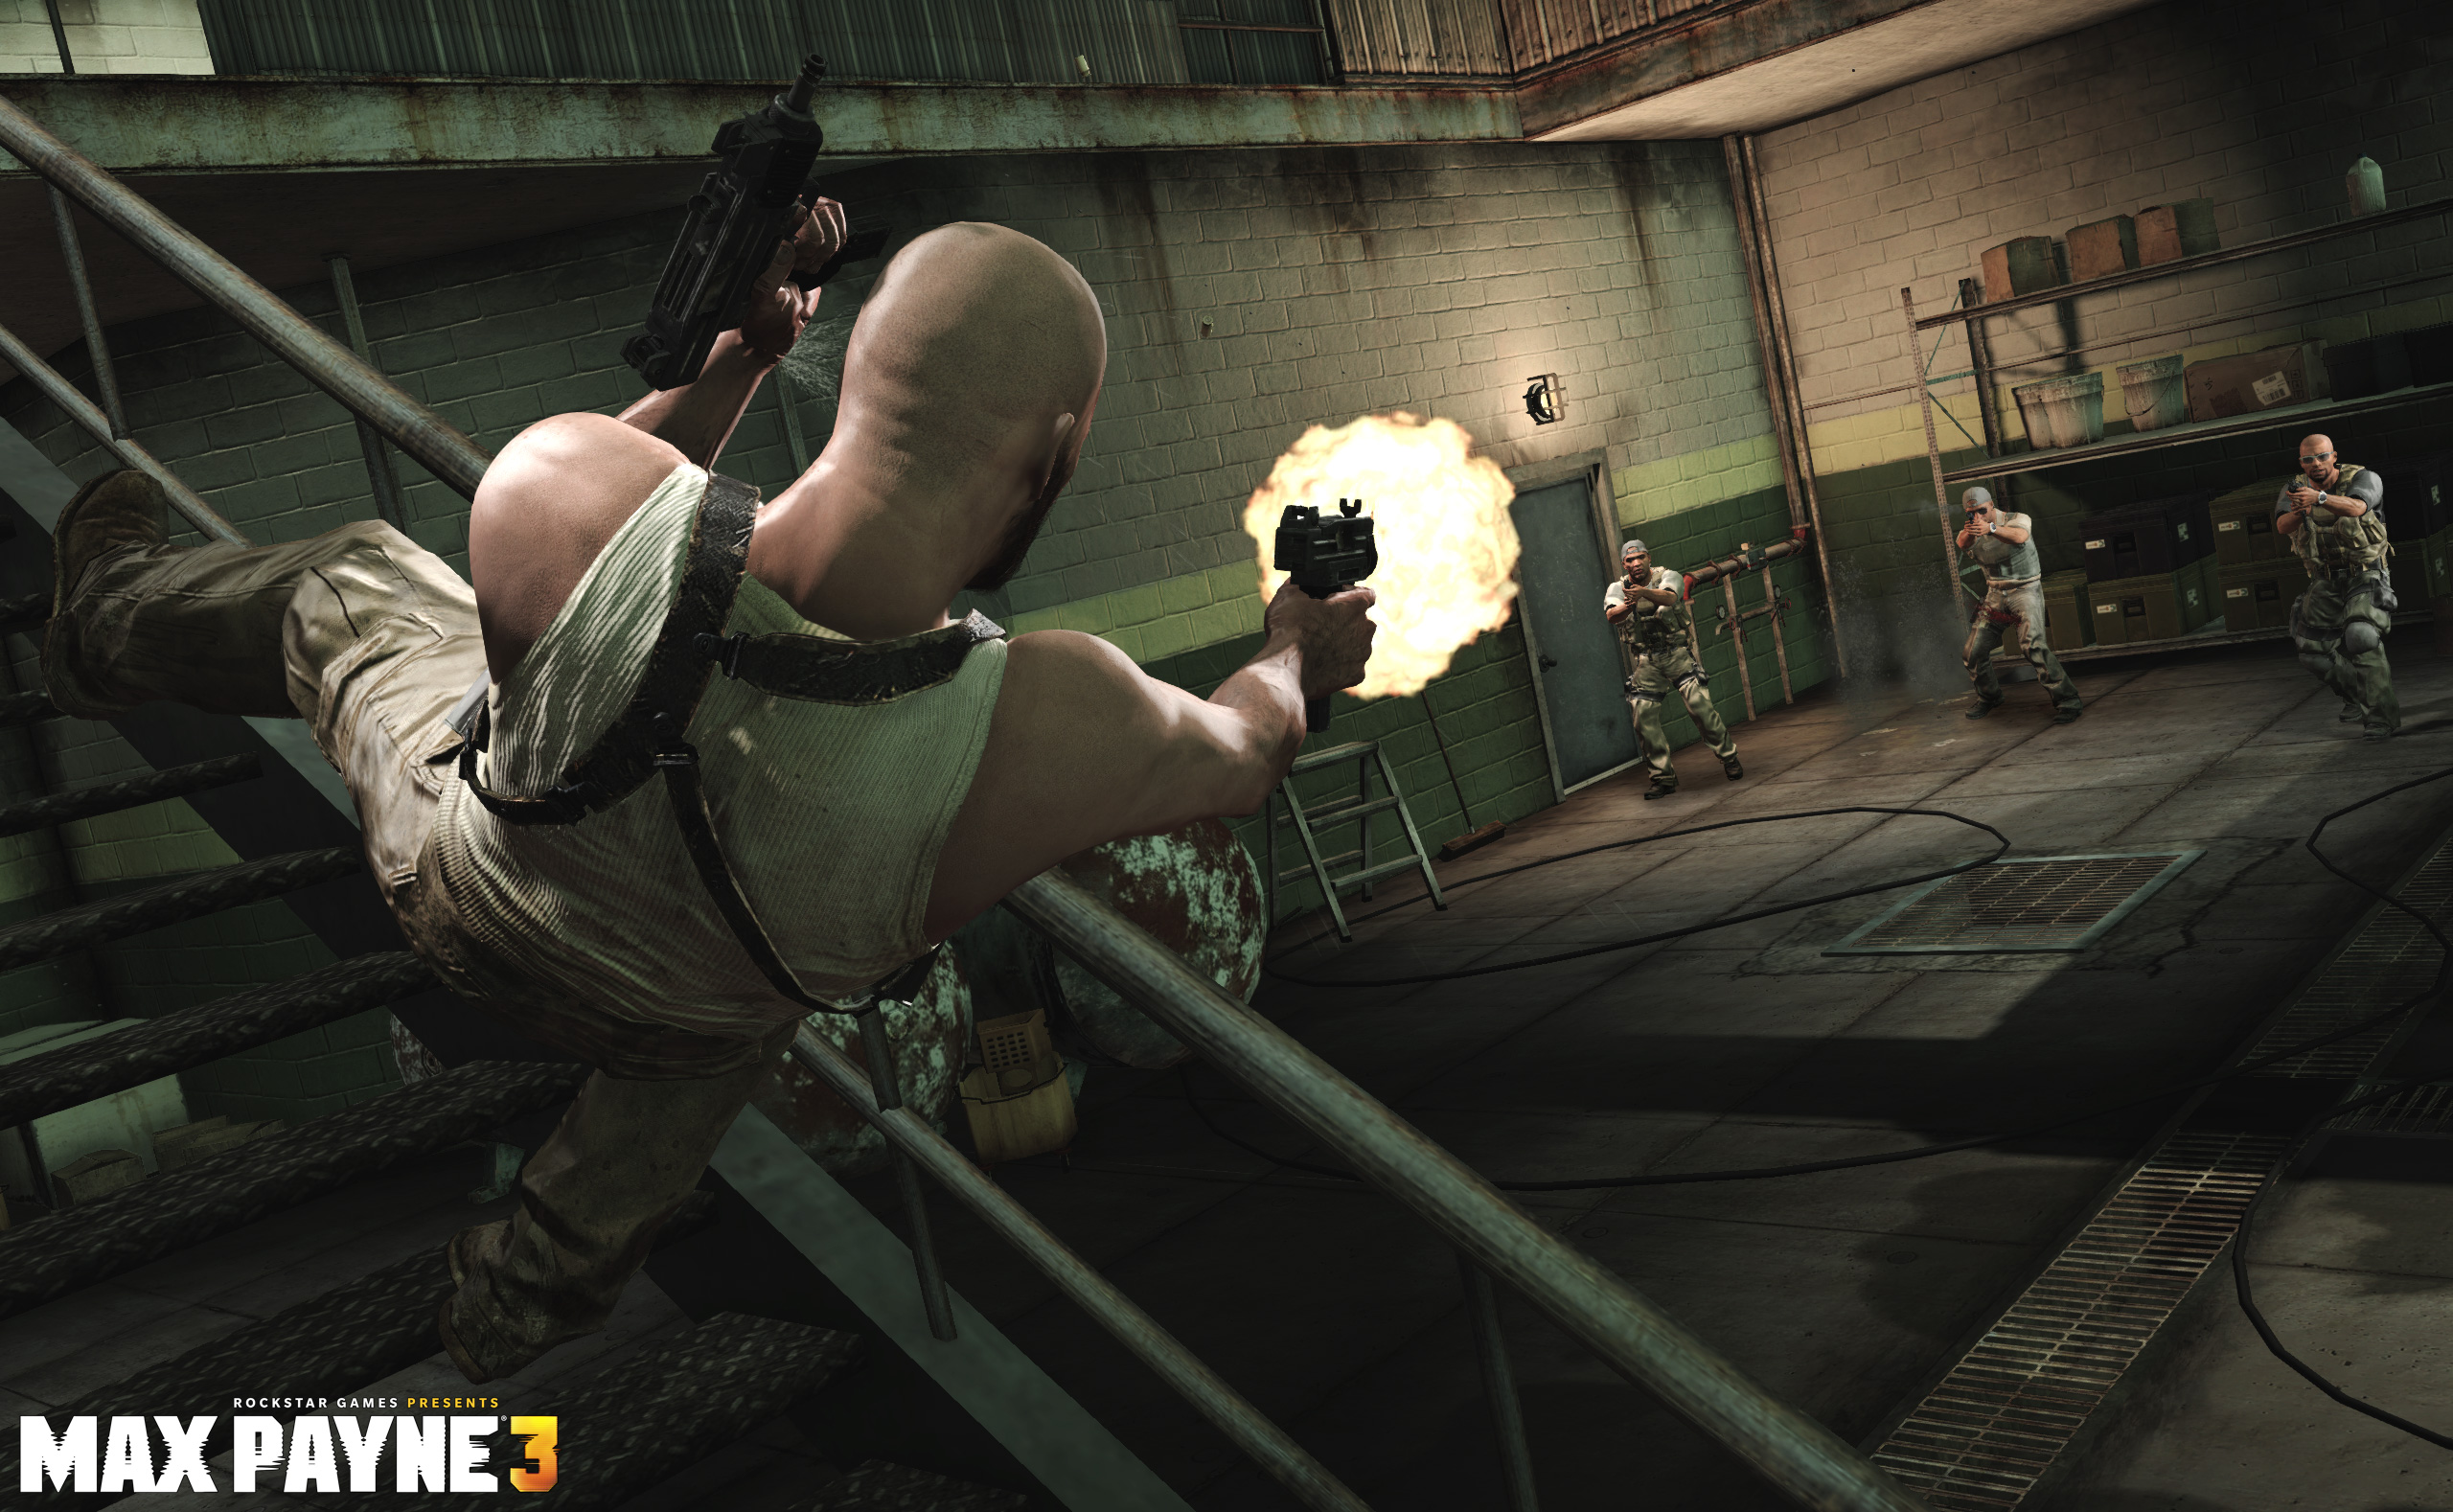 Max Payne 3 Pc Requirements Detailed Further New Screens